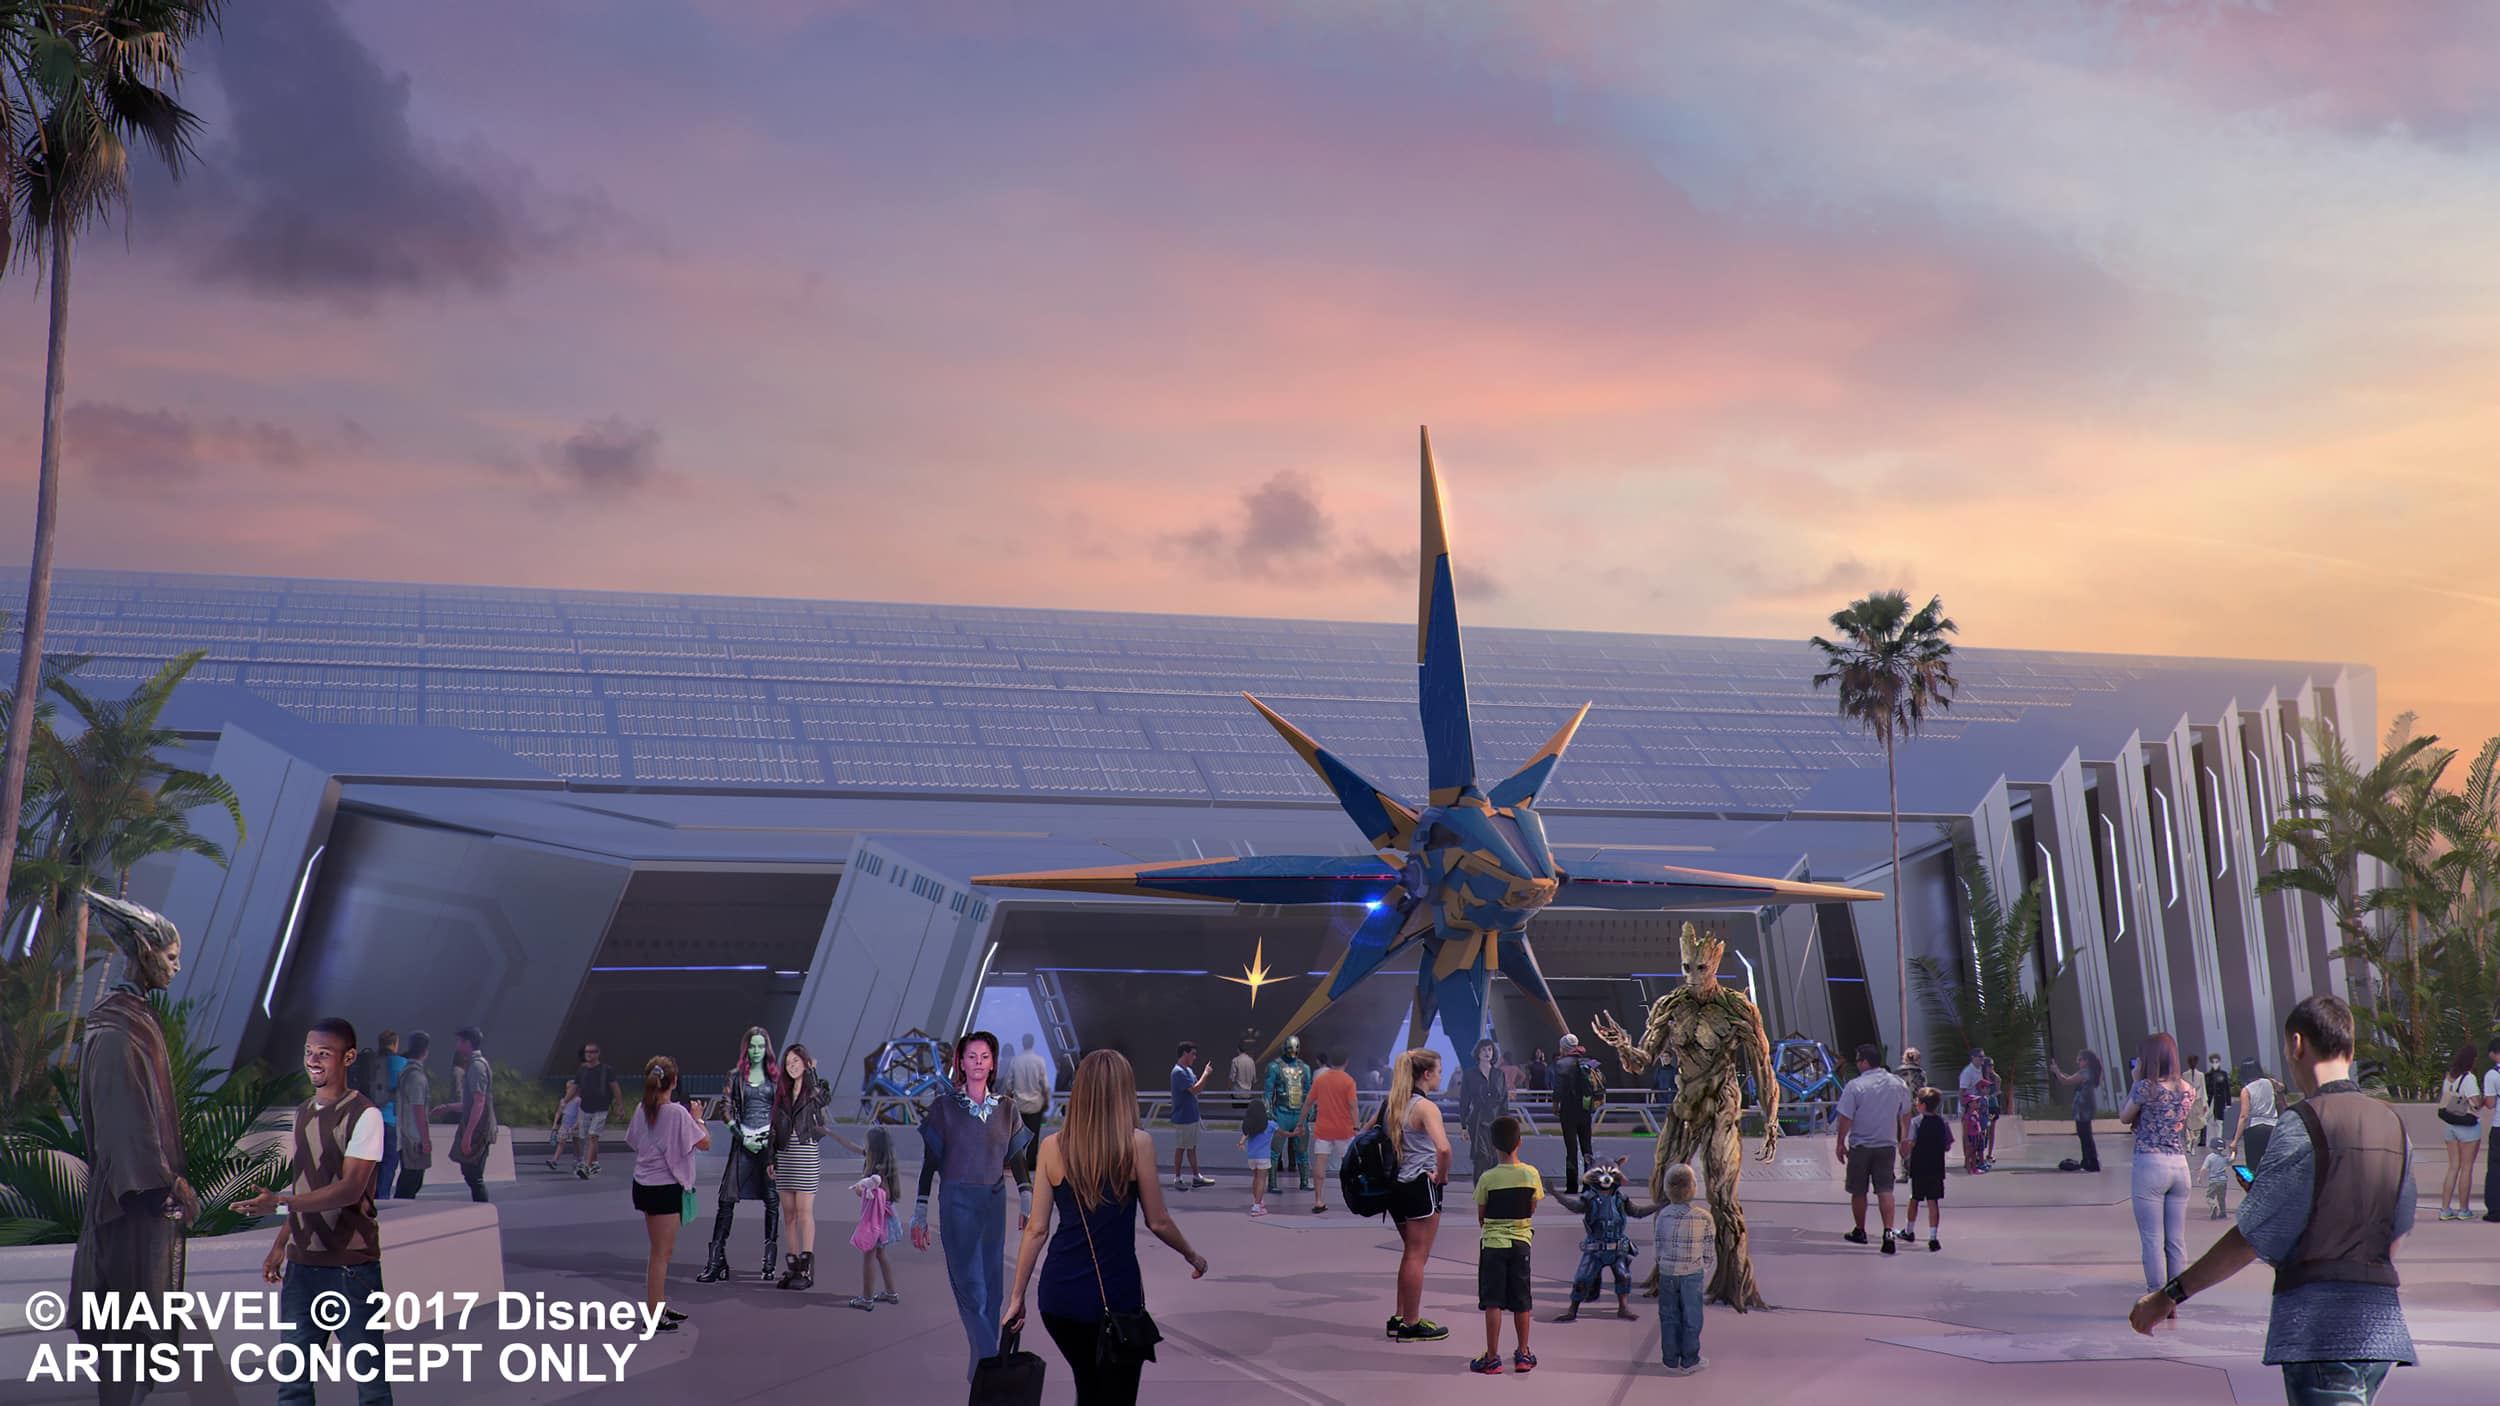 Conceptual art depicting Guests standing by a 'Guardians of the Galaxy' themed mural